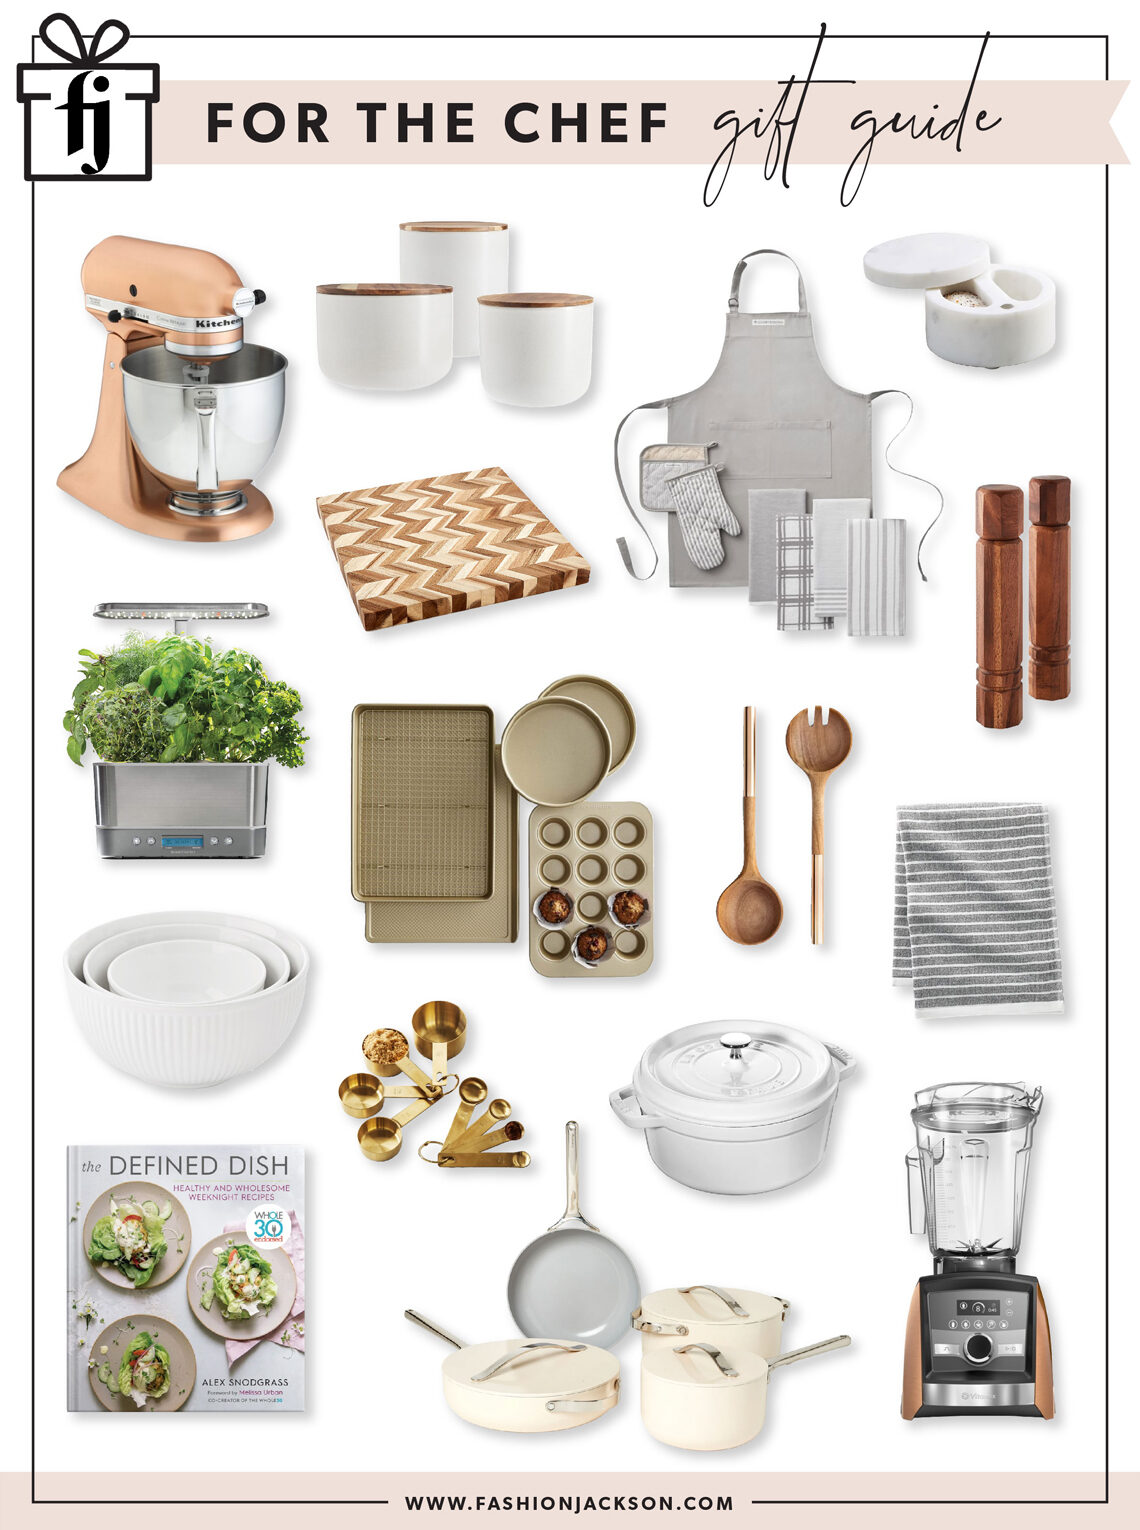 Fashion Jackson Holiday 2020 Chef Gift Guide